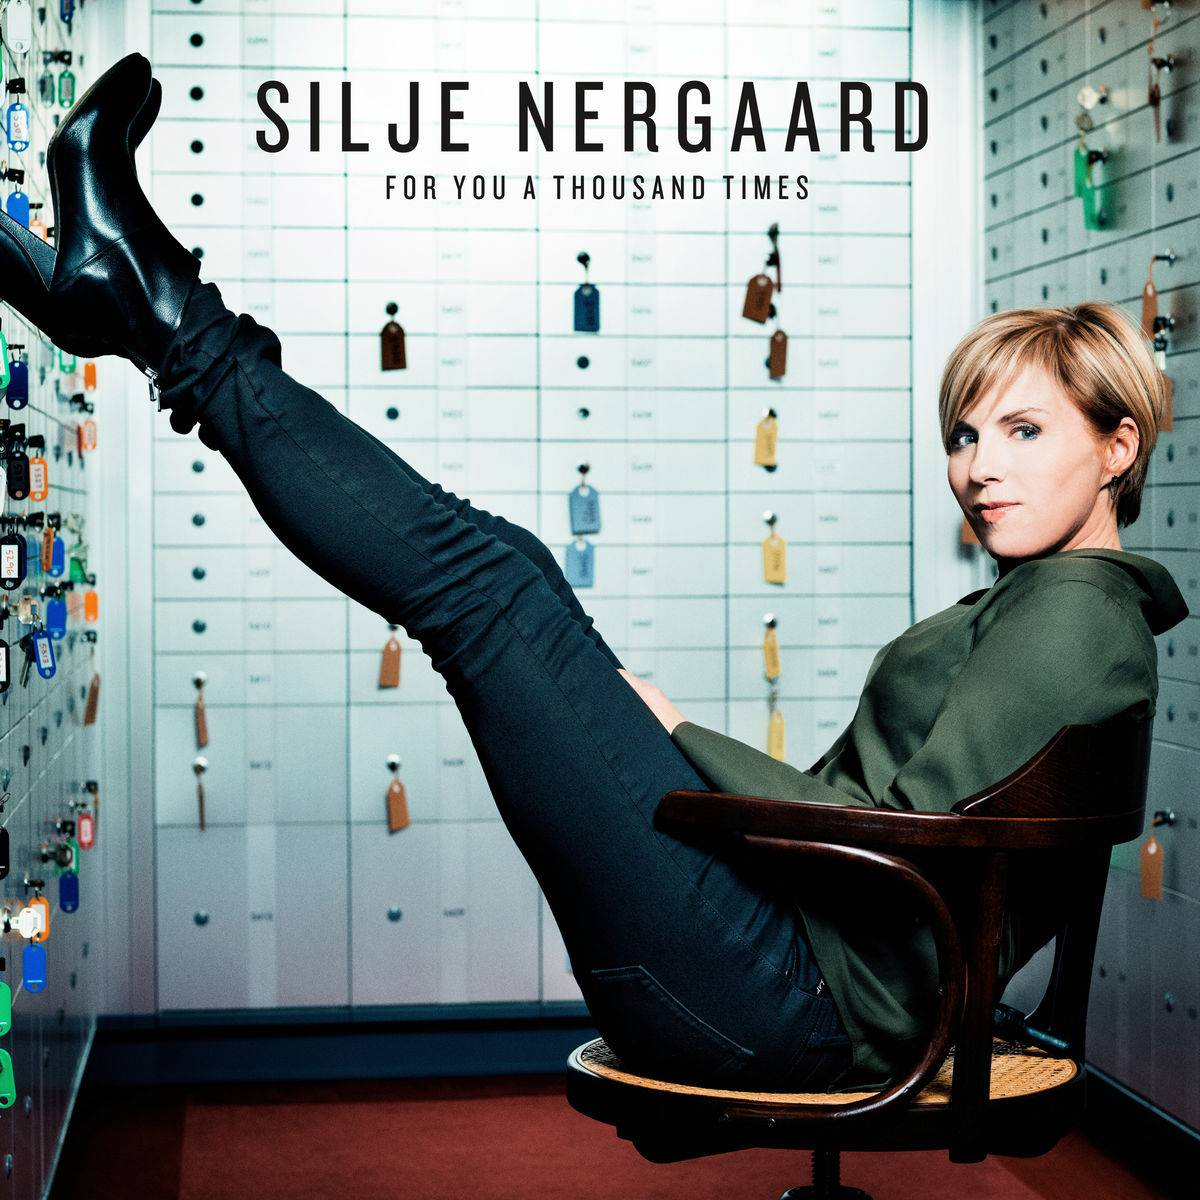 Silje Nergaard - For You a Thousand Times (2017) [Official Digital Download 24/96]